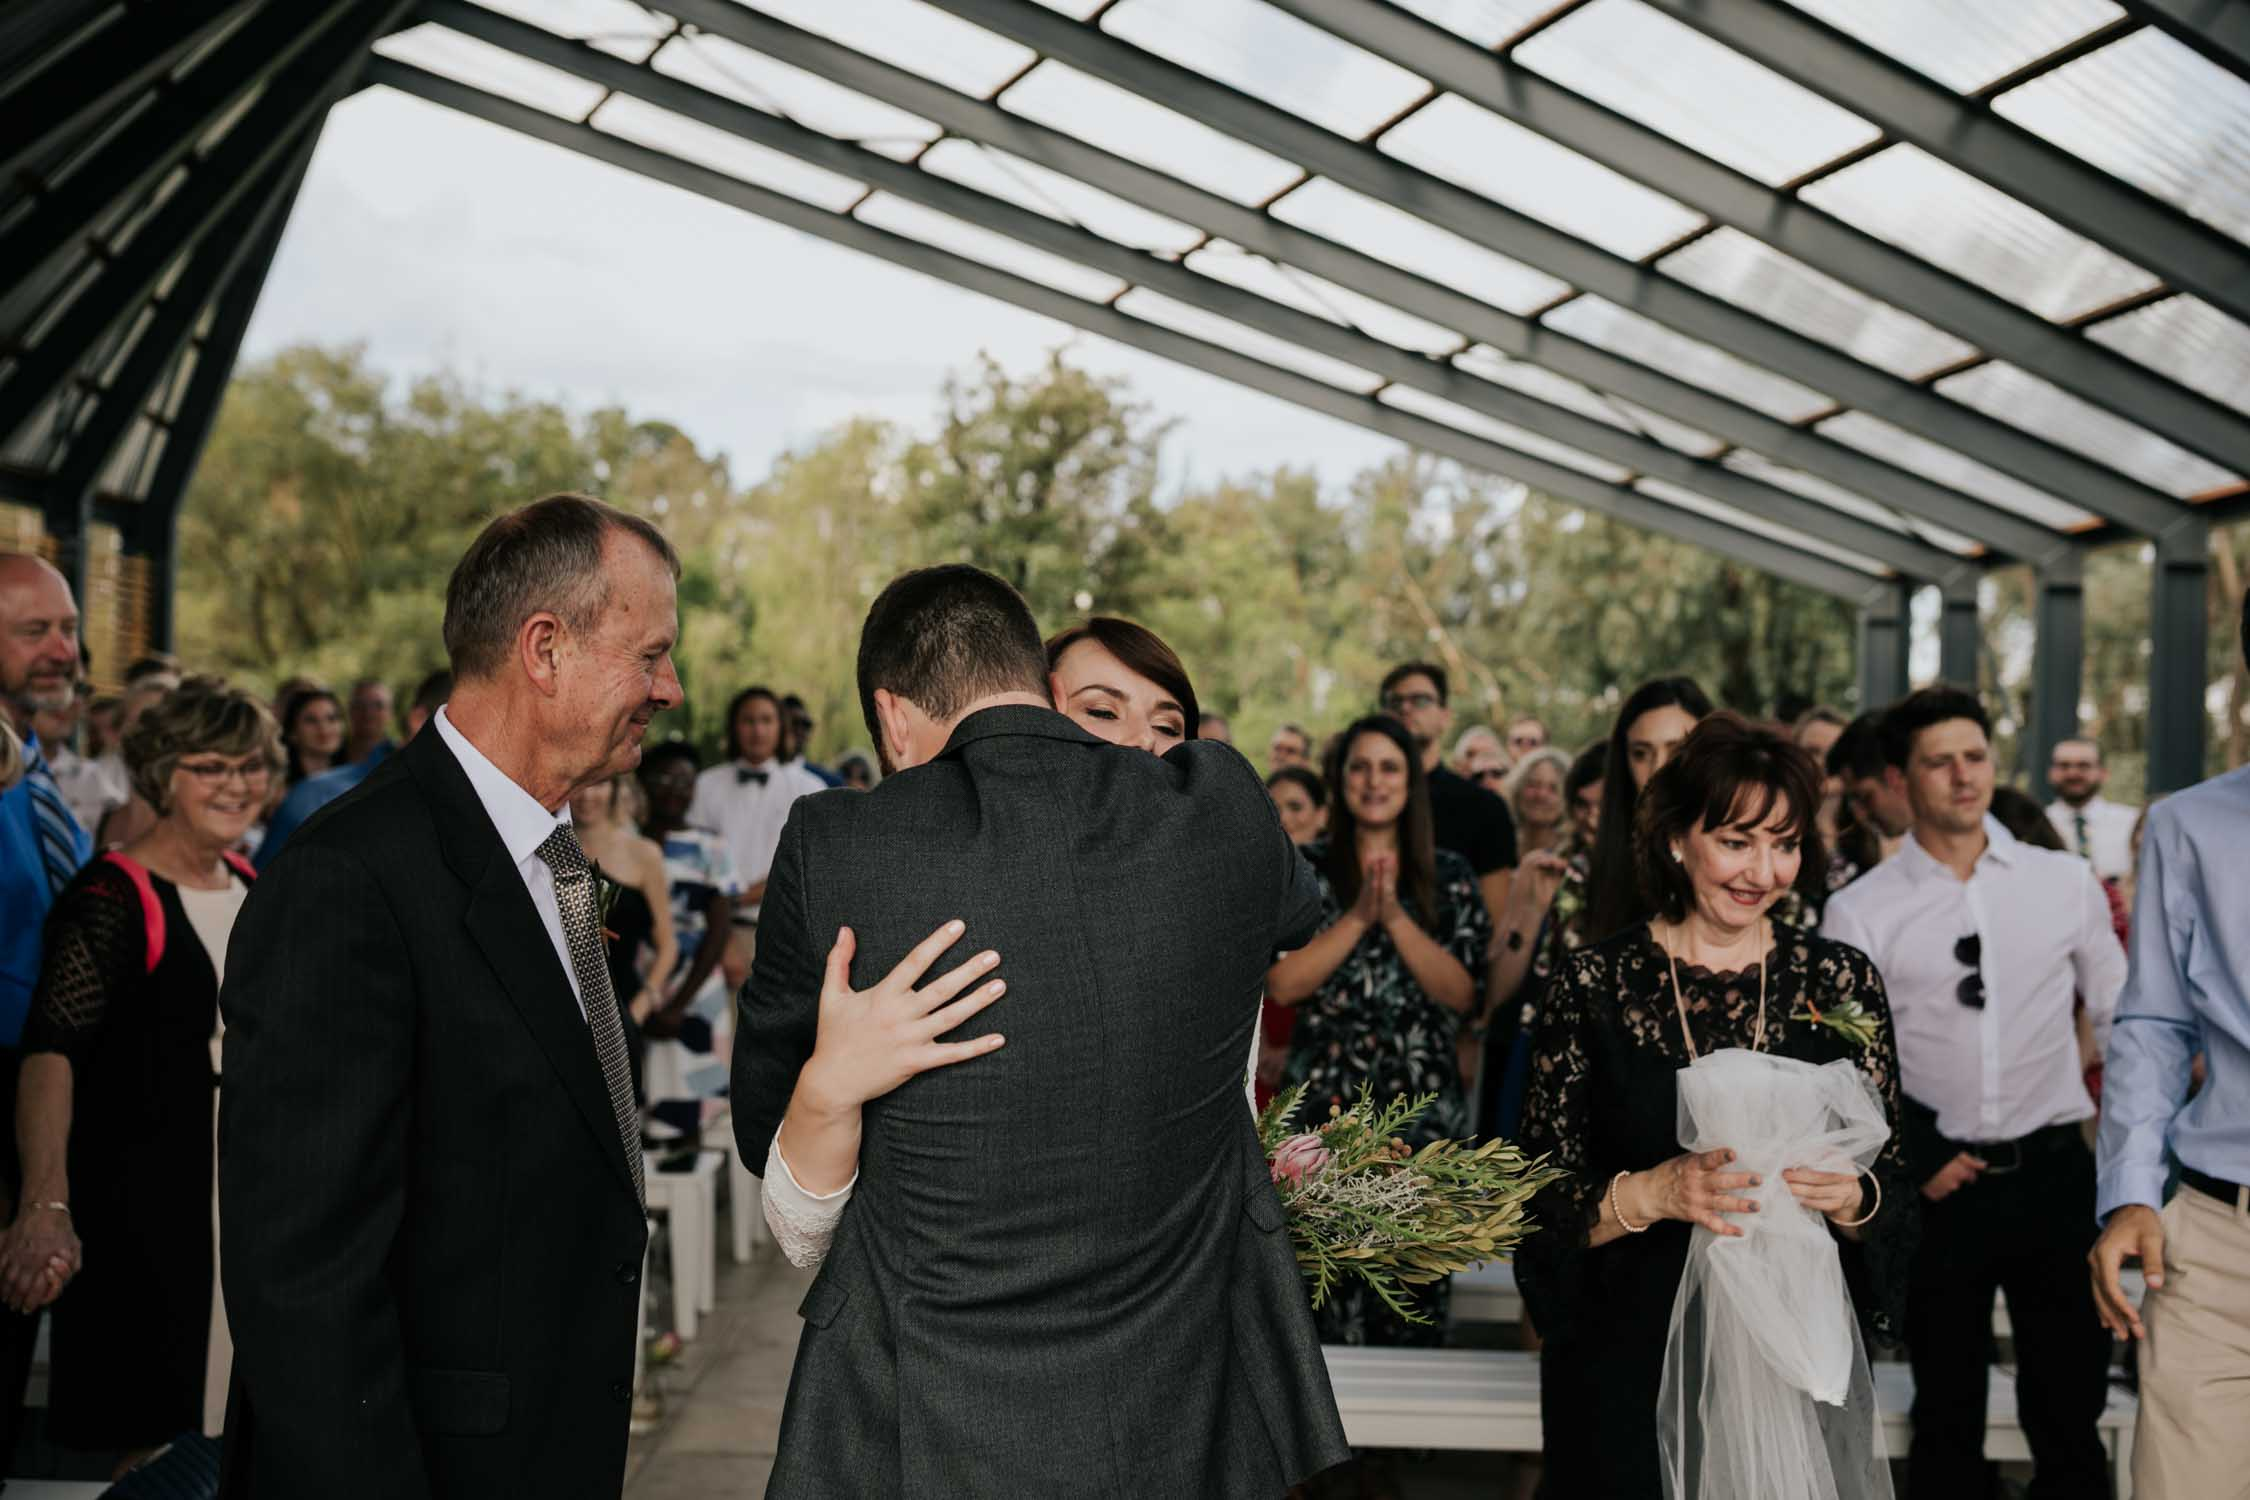 Emotional and raw wedding moment when groom hugs his bride at the top of the aisle